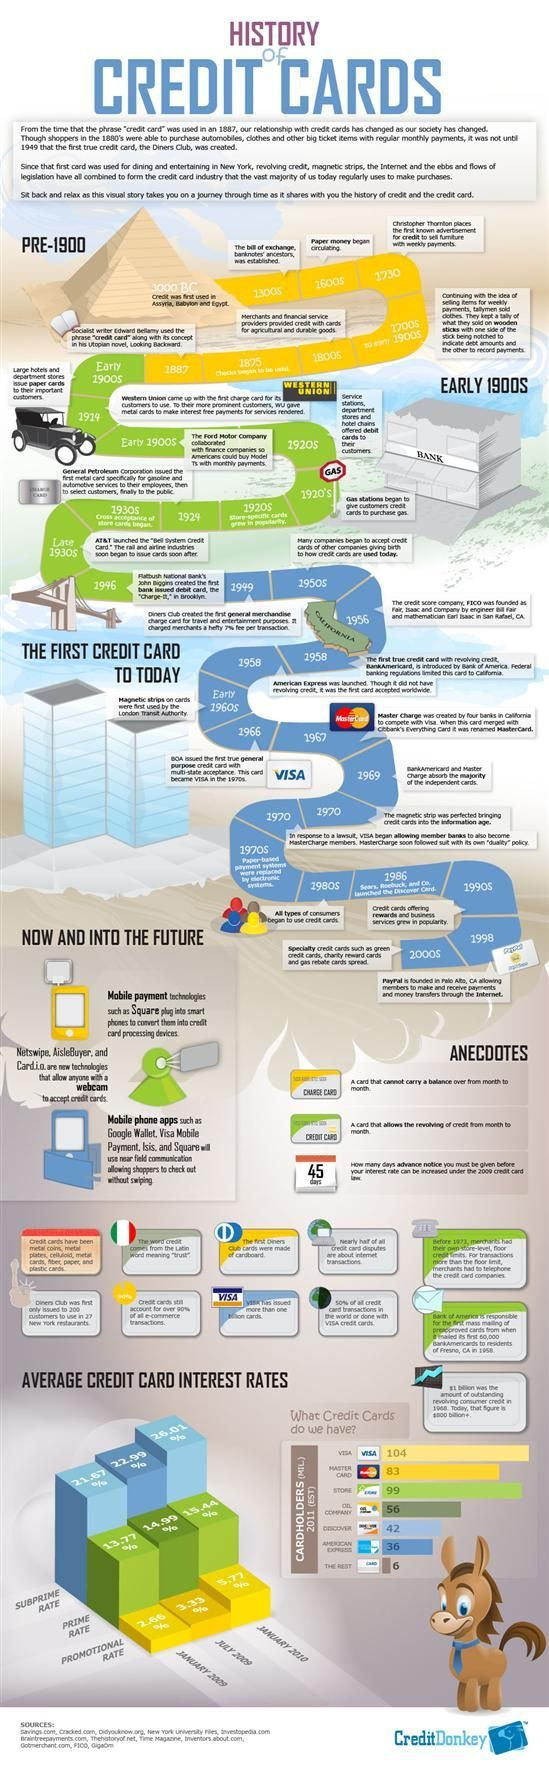 History of Credit Cards #infographic